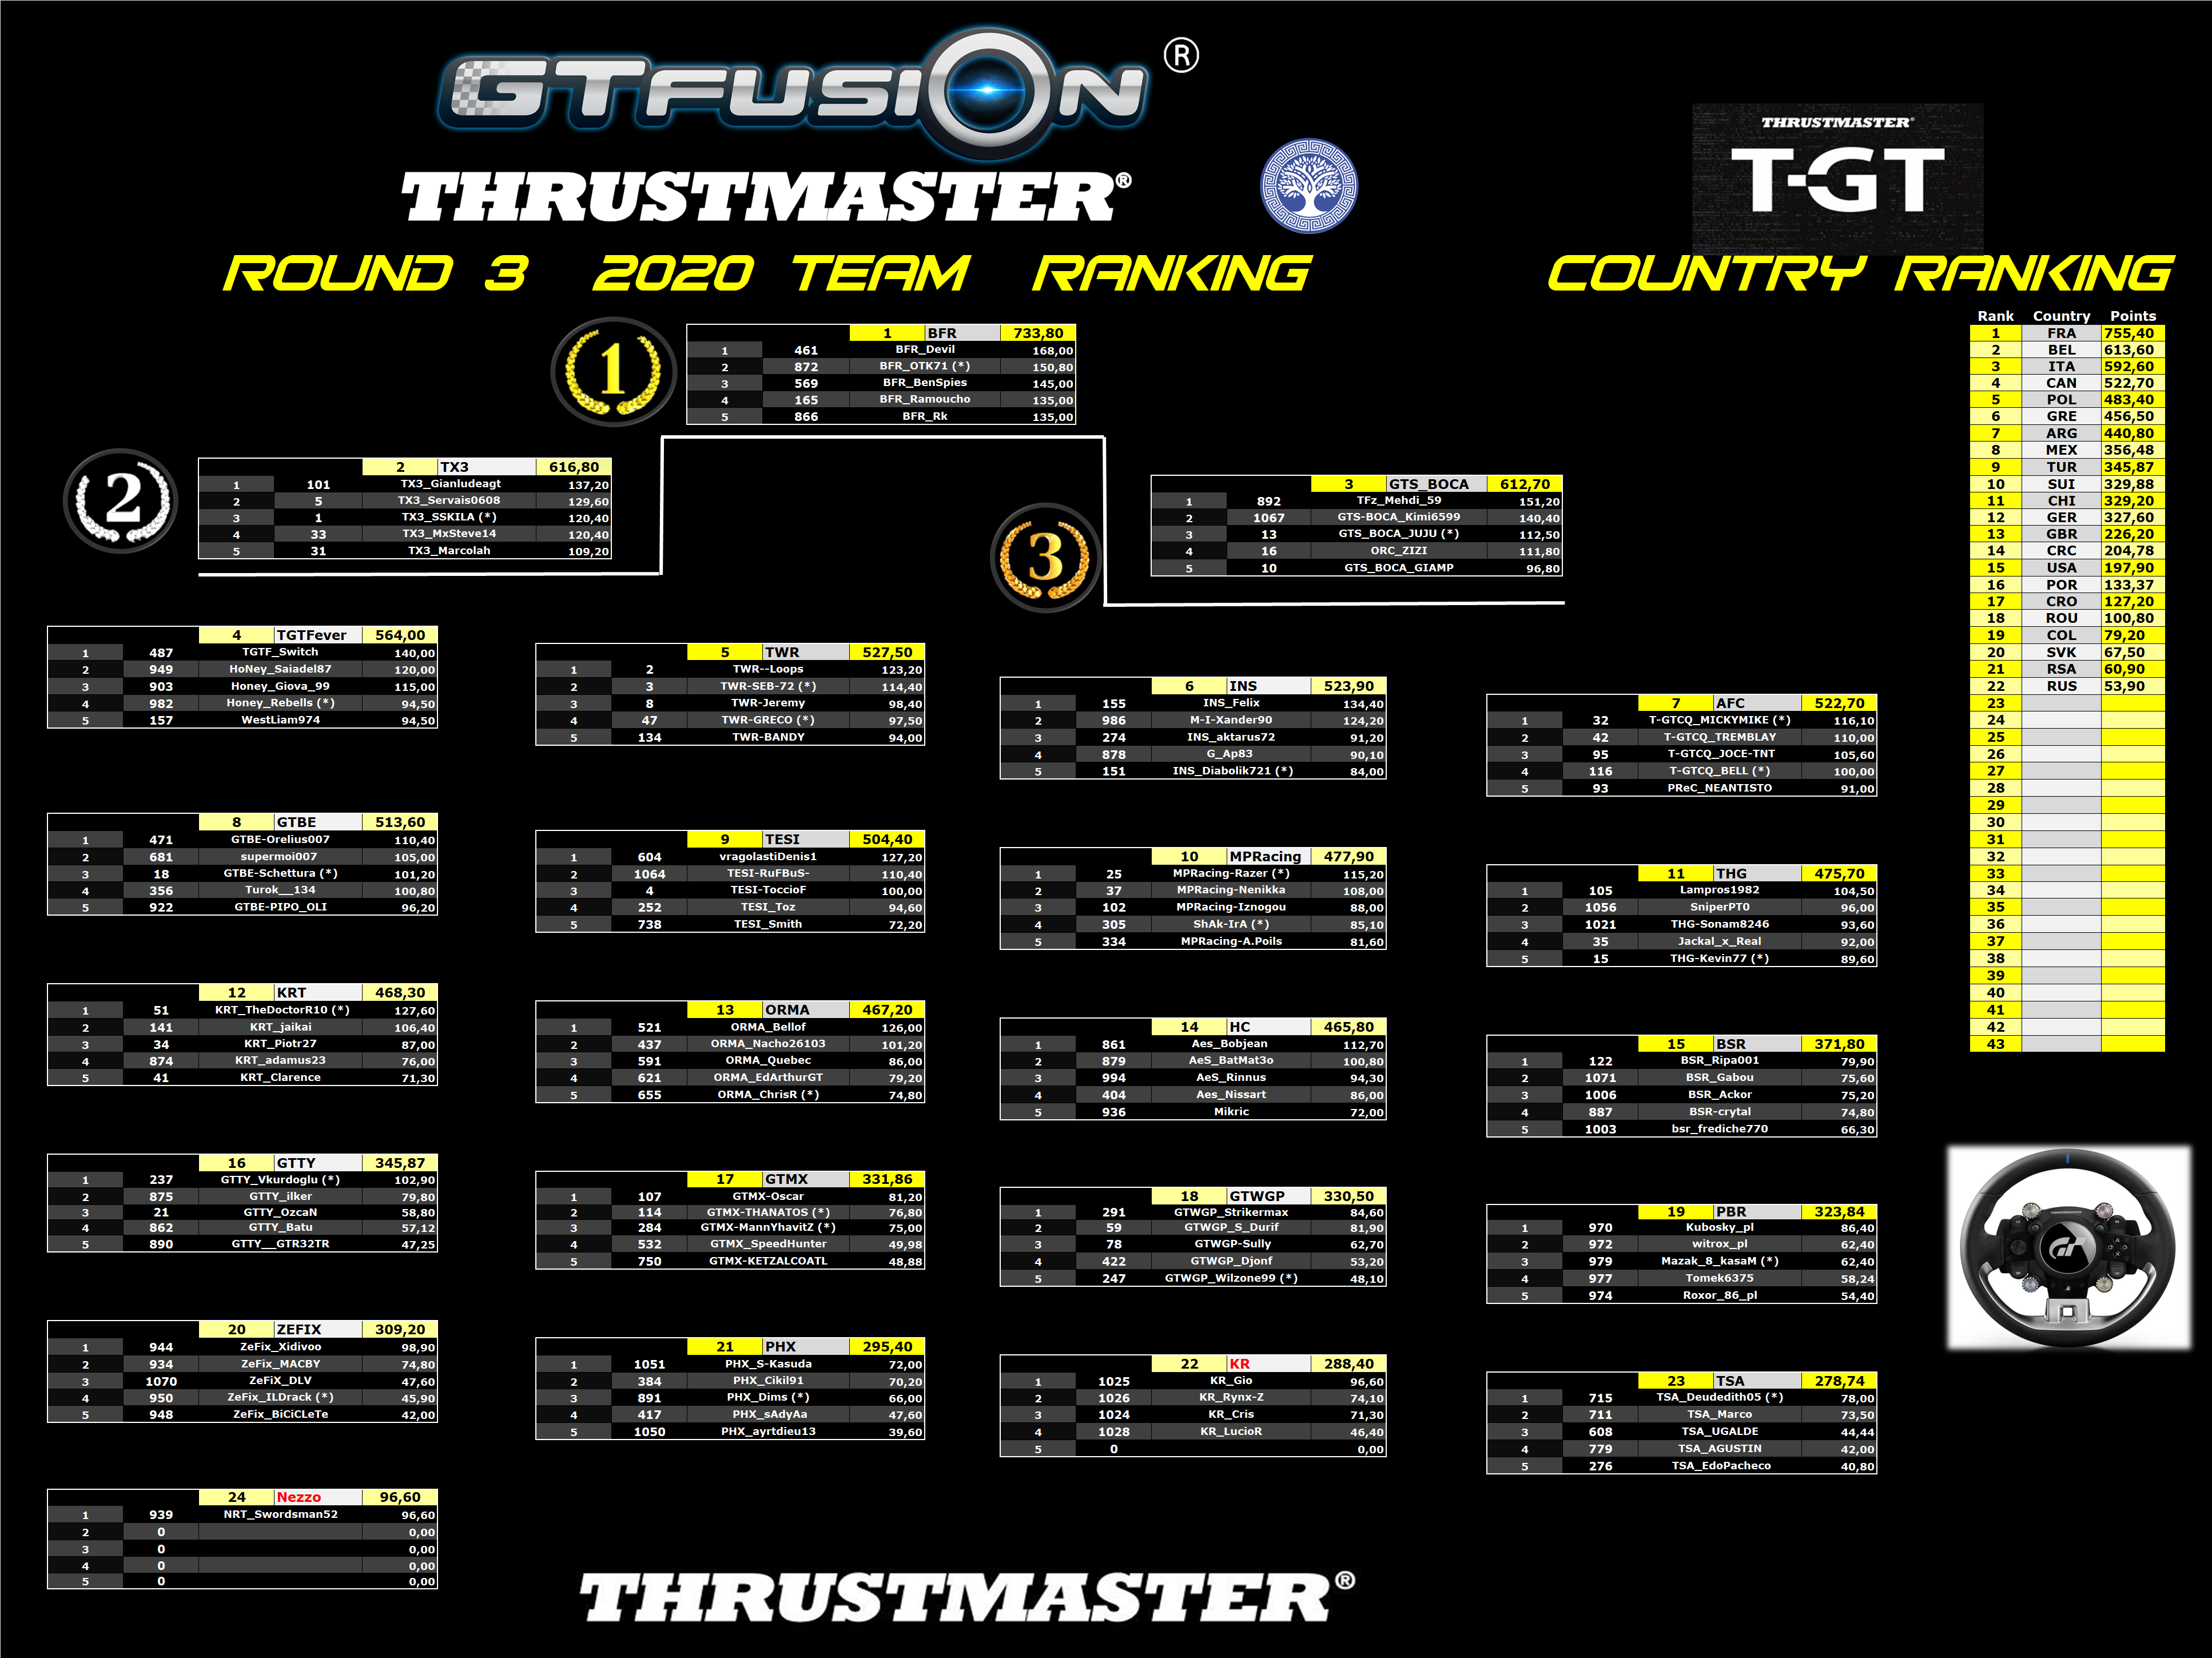 GTfusion GTSport World Championship Round 3 2020 Thrustmaster Team Results2